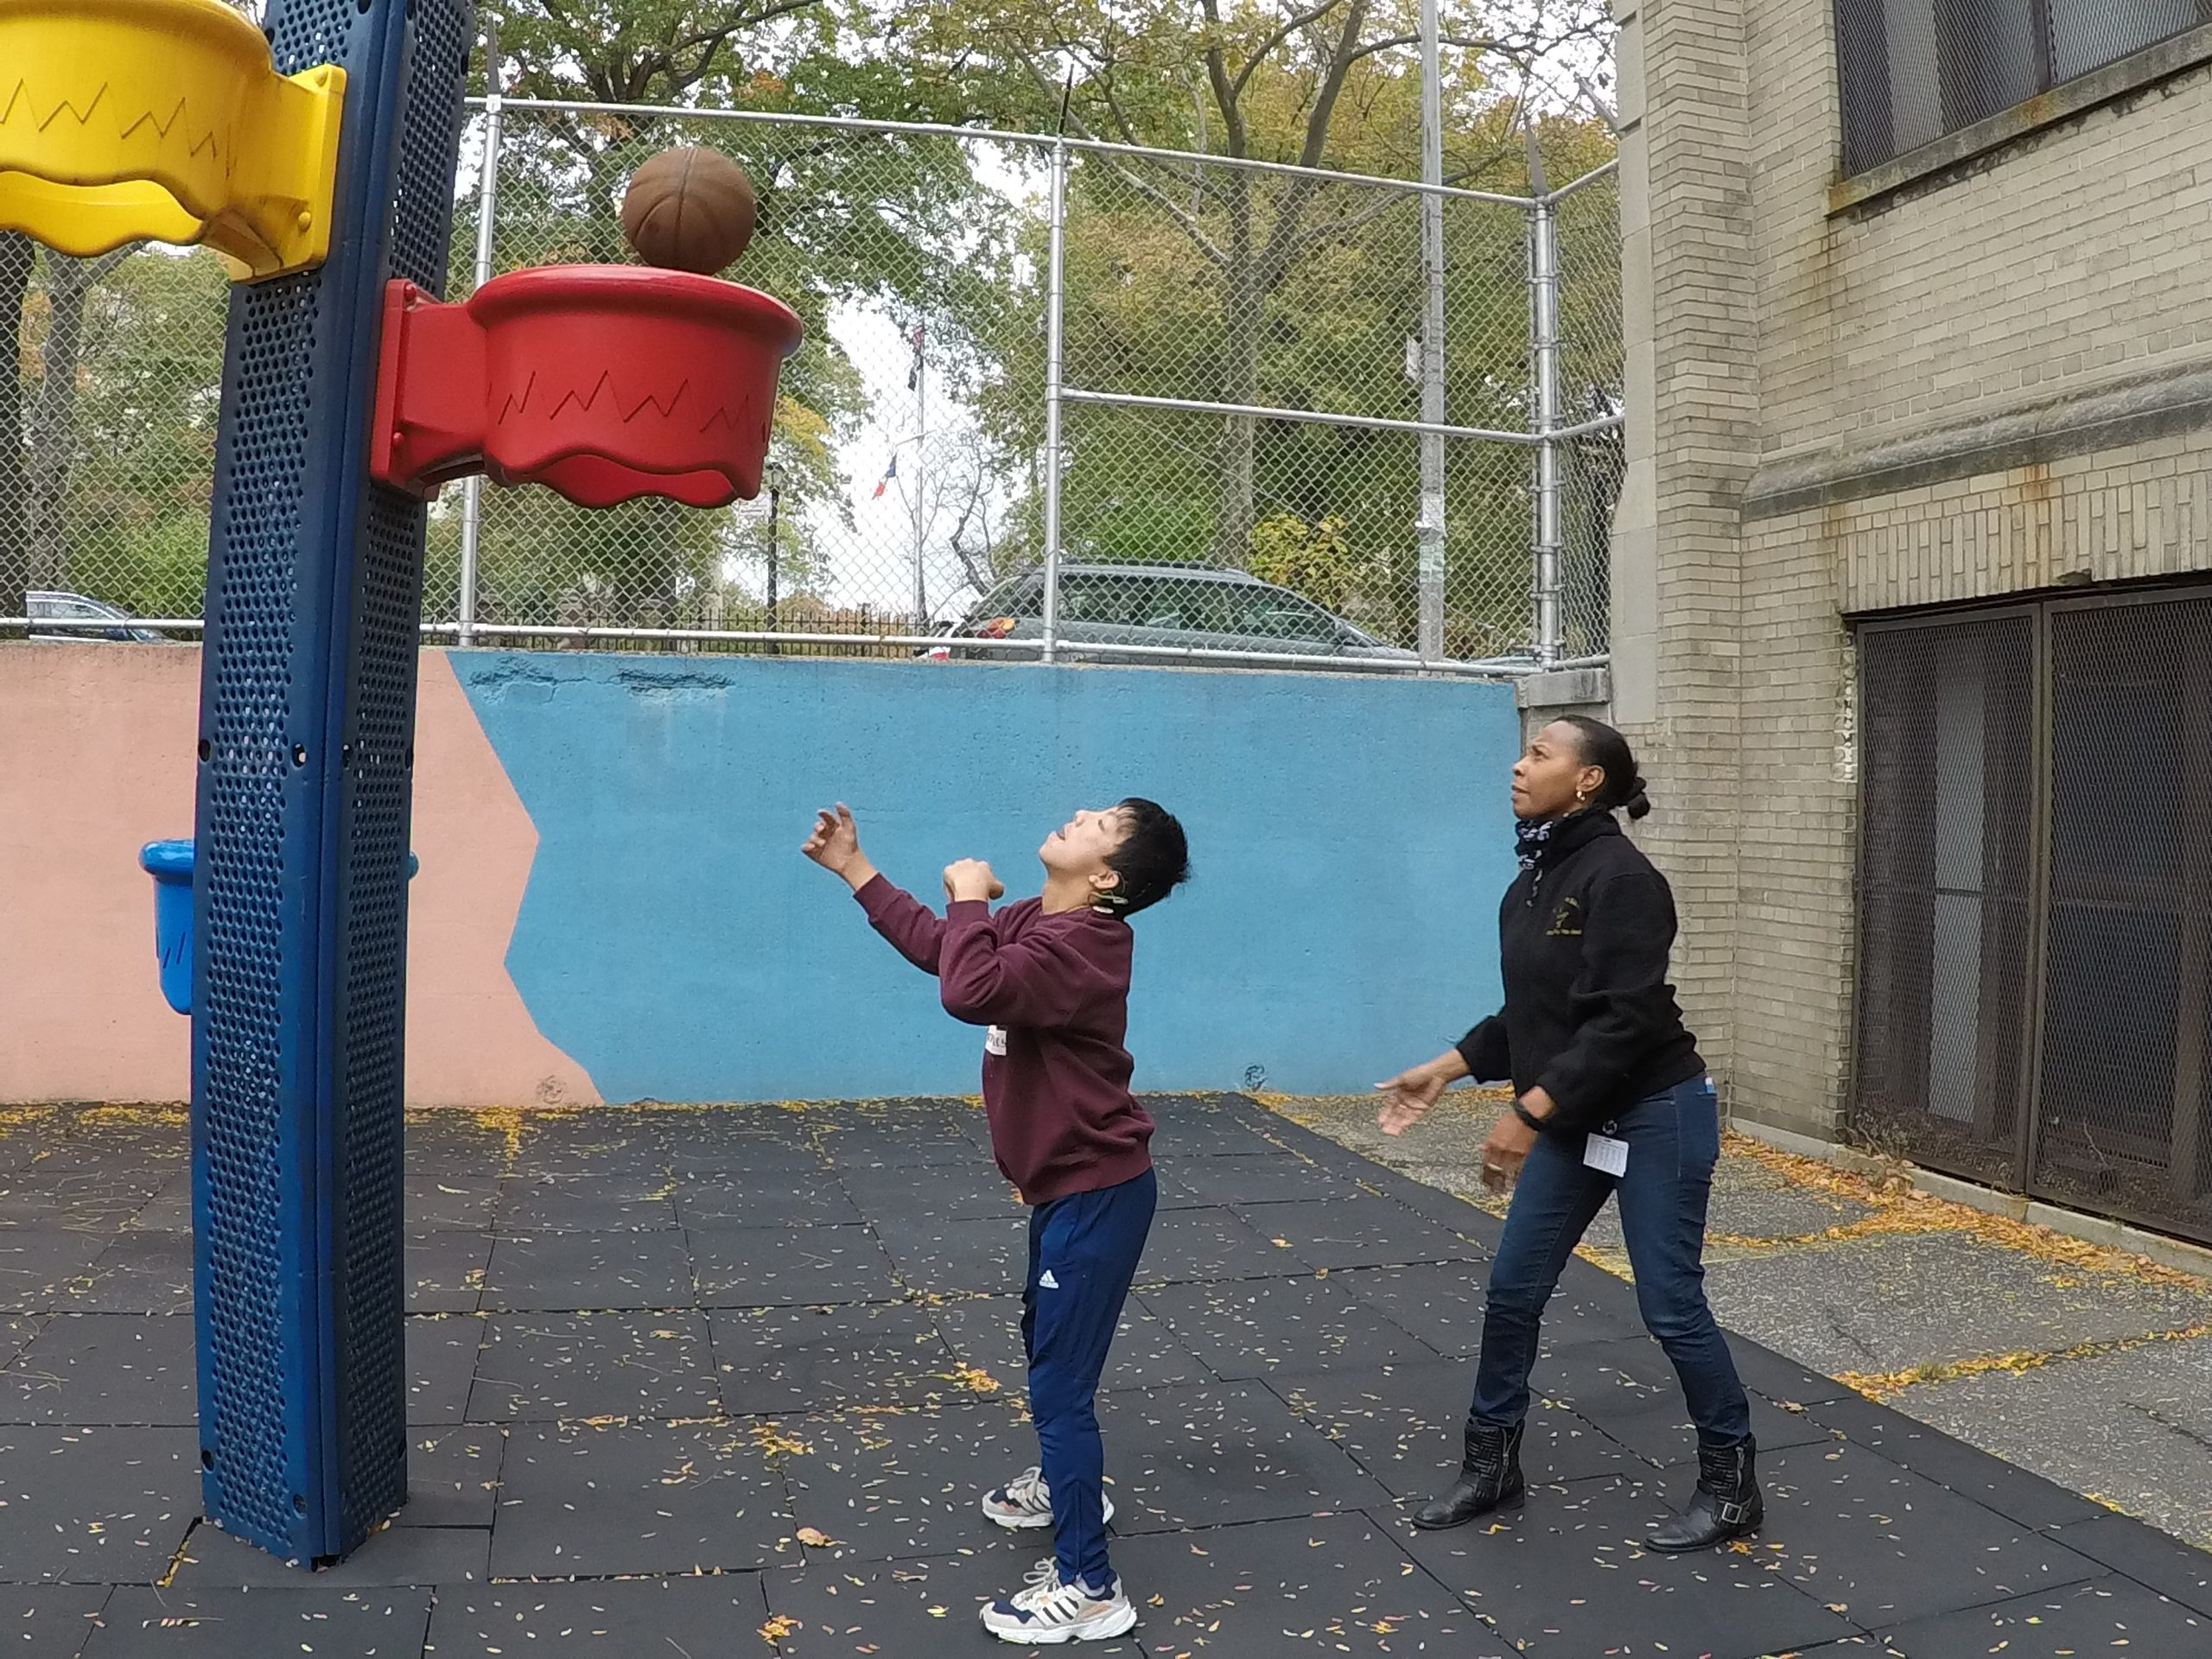 A male middle school student is playing basketball with the female occupational therapist outside on the playground. Both their eyes are on the ball as it is about to go through the hoop.